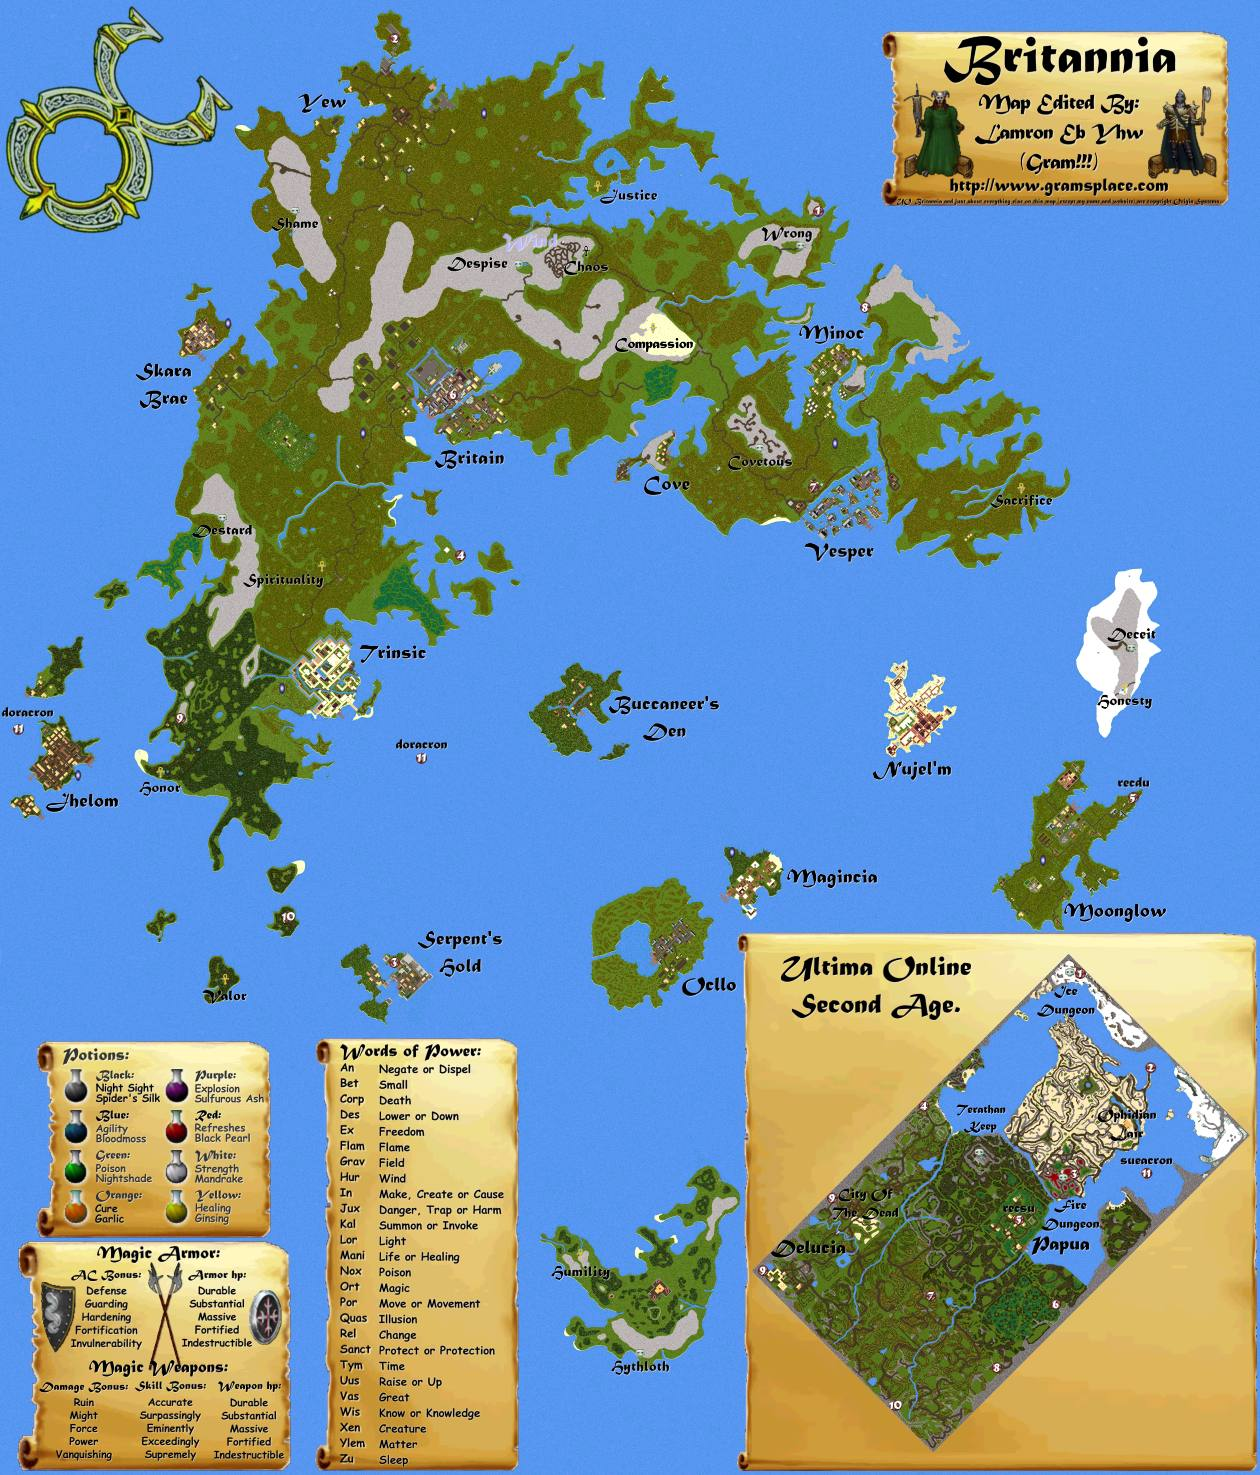 UO Stratics Grams Ultimate World Maps Main - World maps online